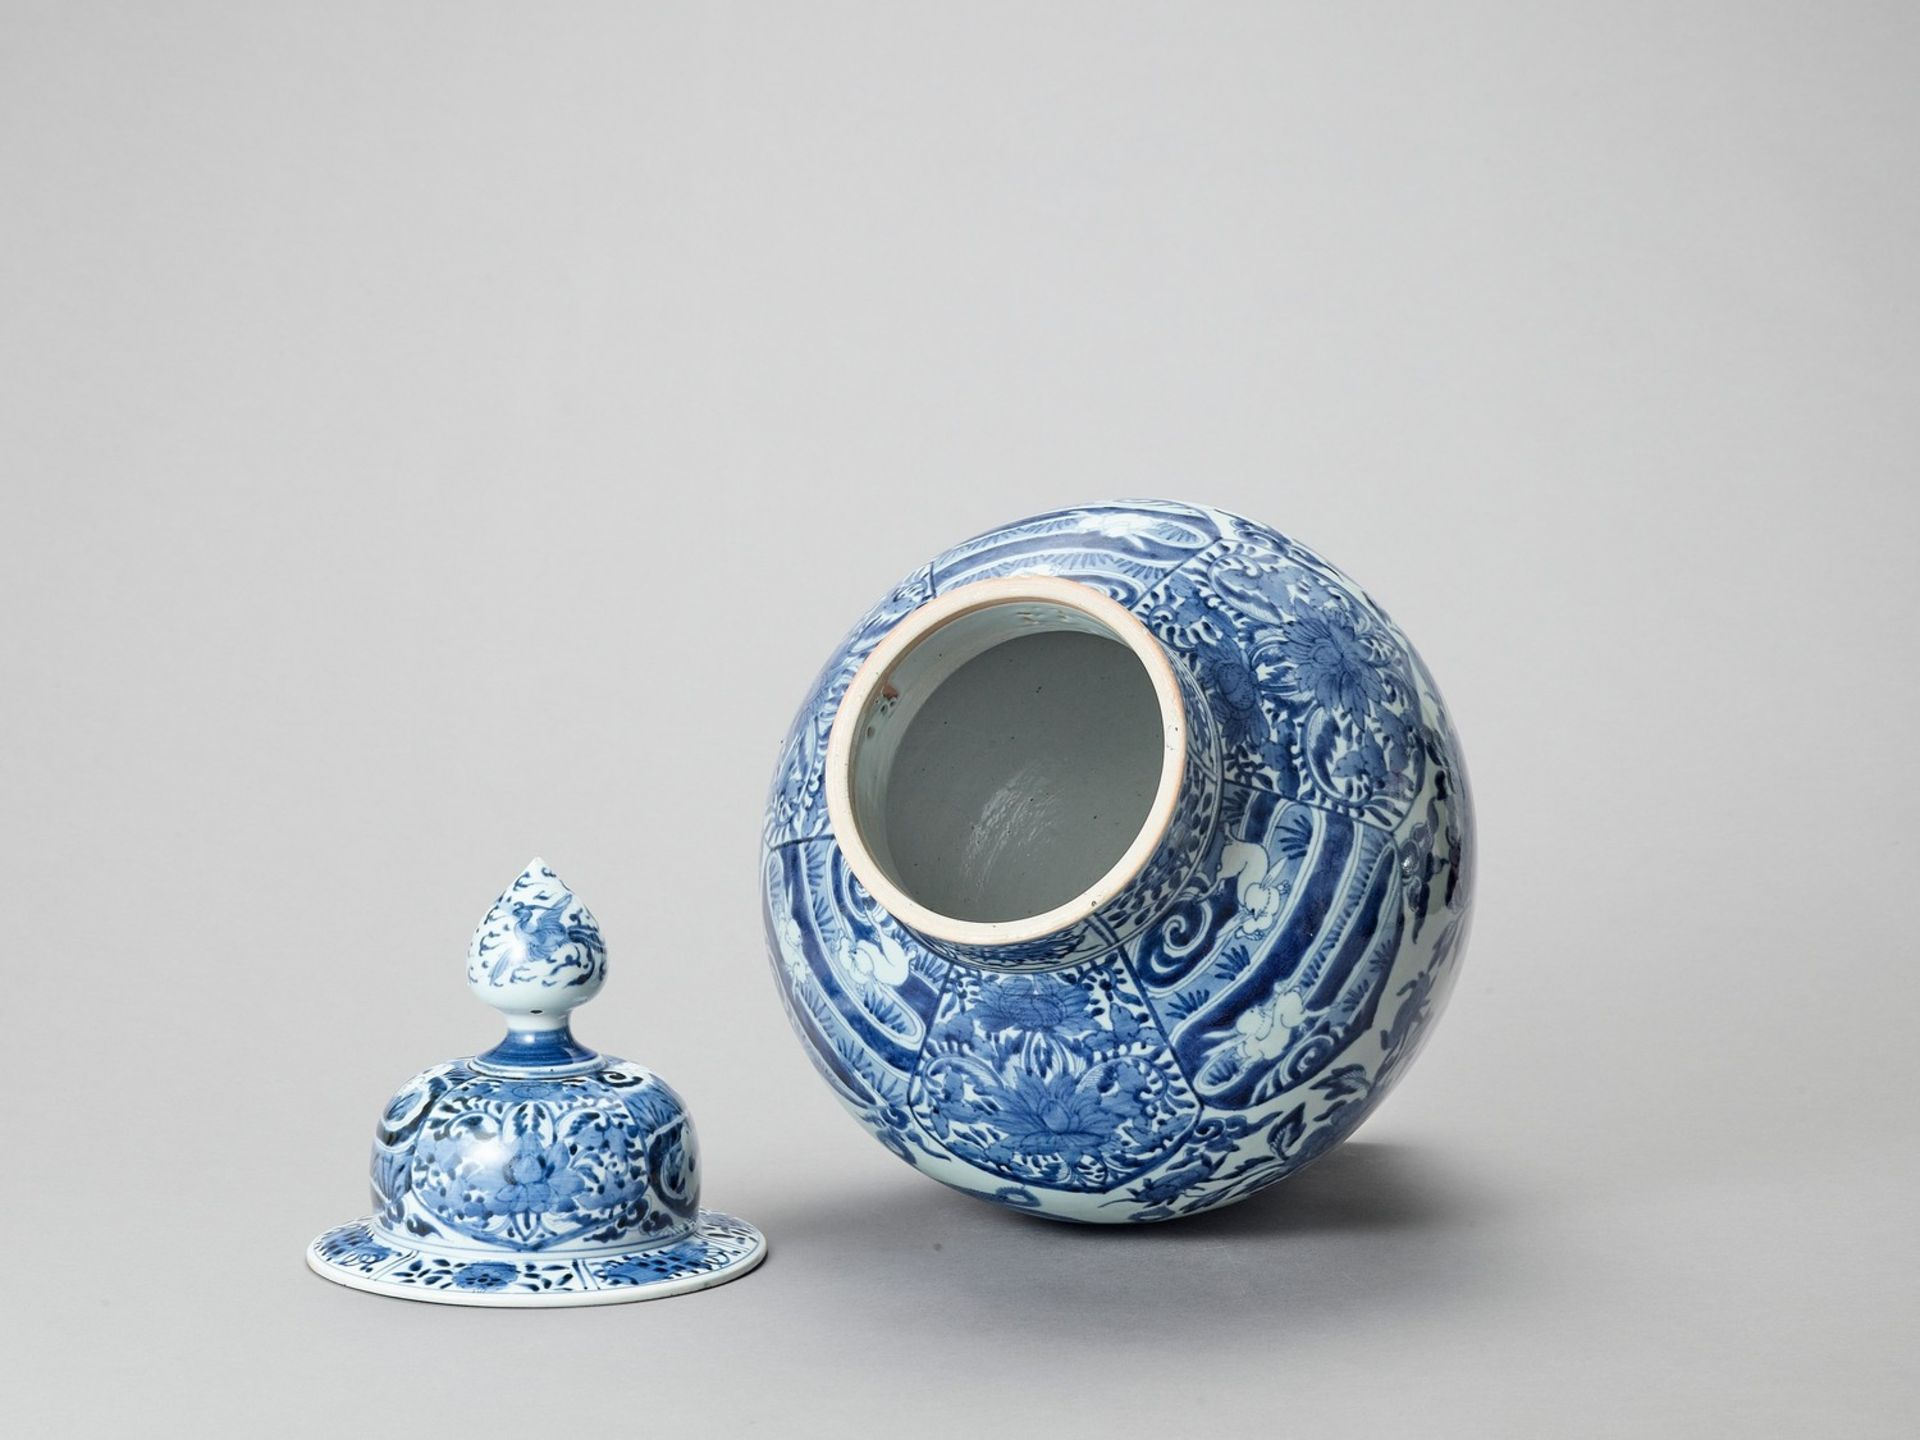 A LARGE BLUE AND WHITE PORCELAIN JAR AND COVER - Image 5 of 6